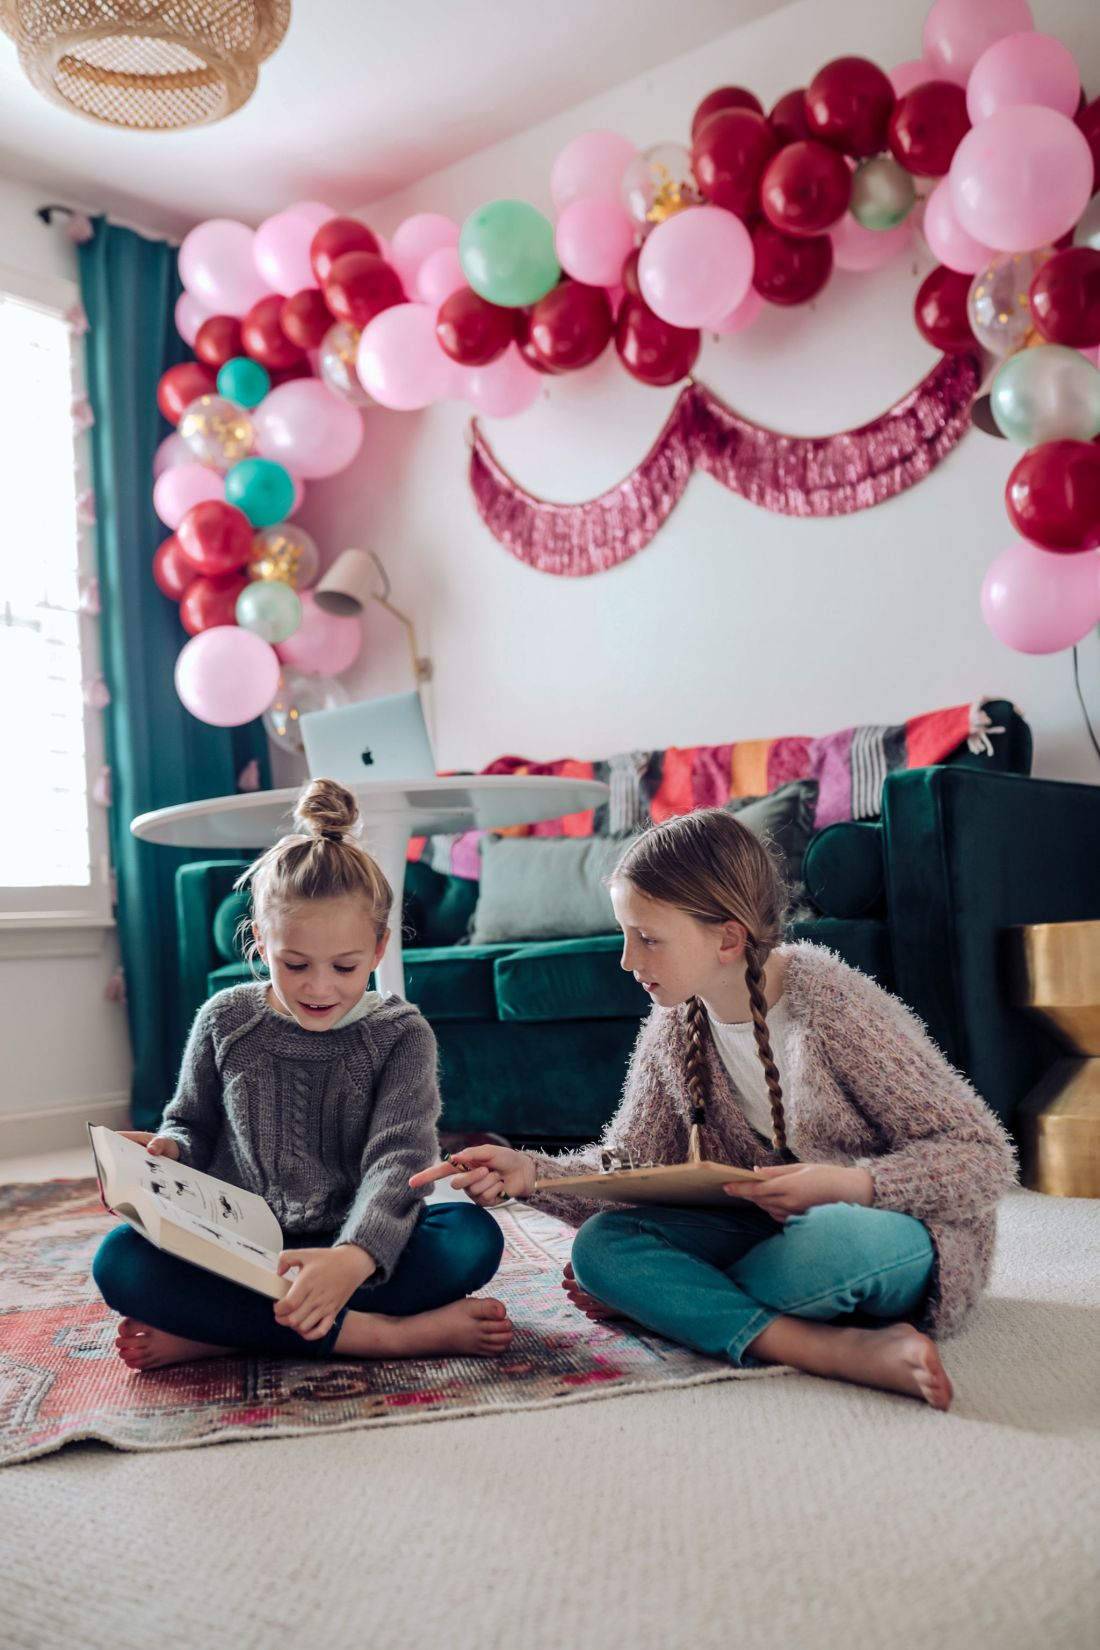 Carpet and Rug Institute by popular Nashville life and style blog, Modern Day Moguls: image of two girls in on a Carpet and Rug Institute rug in a home office decorated with a balloon garland, and fringe tinsel garland.